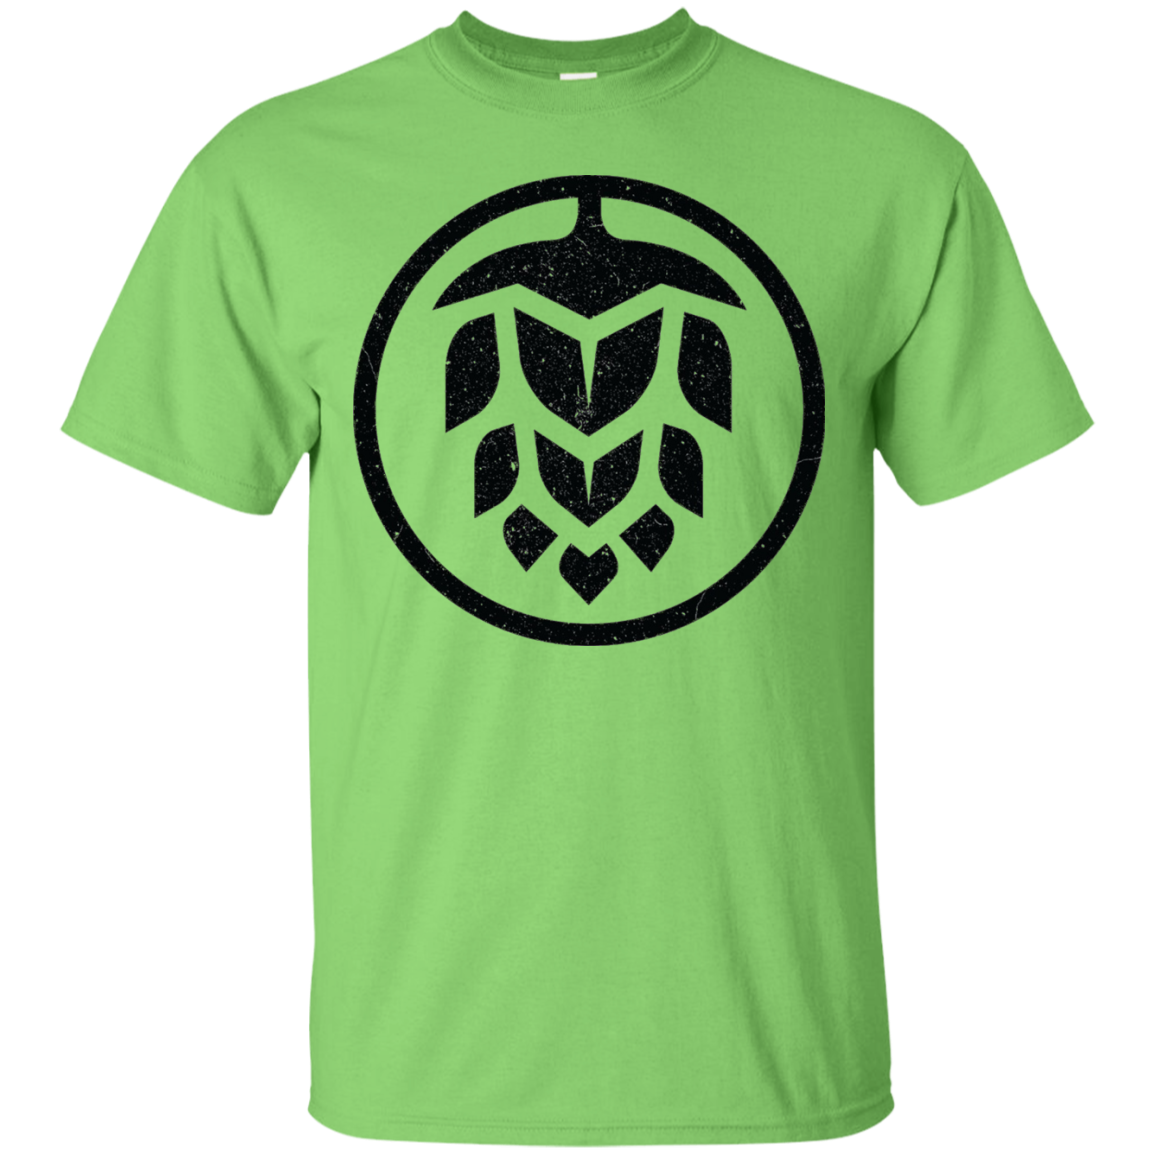 IPA Shirt Craft Beer IPA T-Shirt Hopps T-Shirt Hops Logo